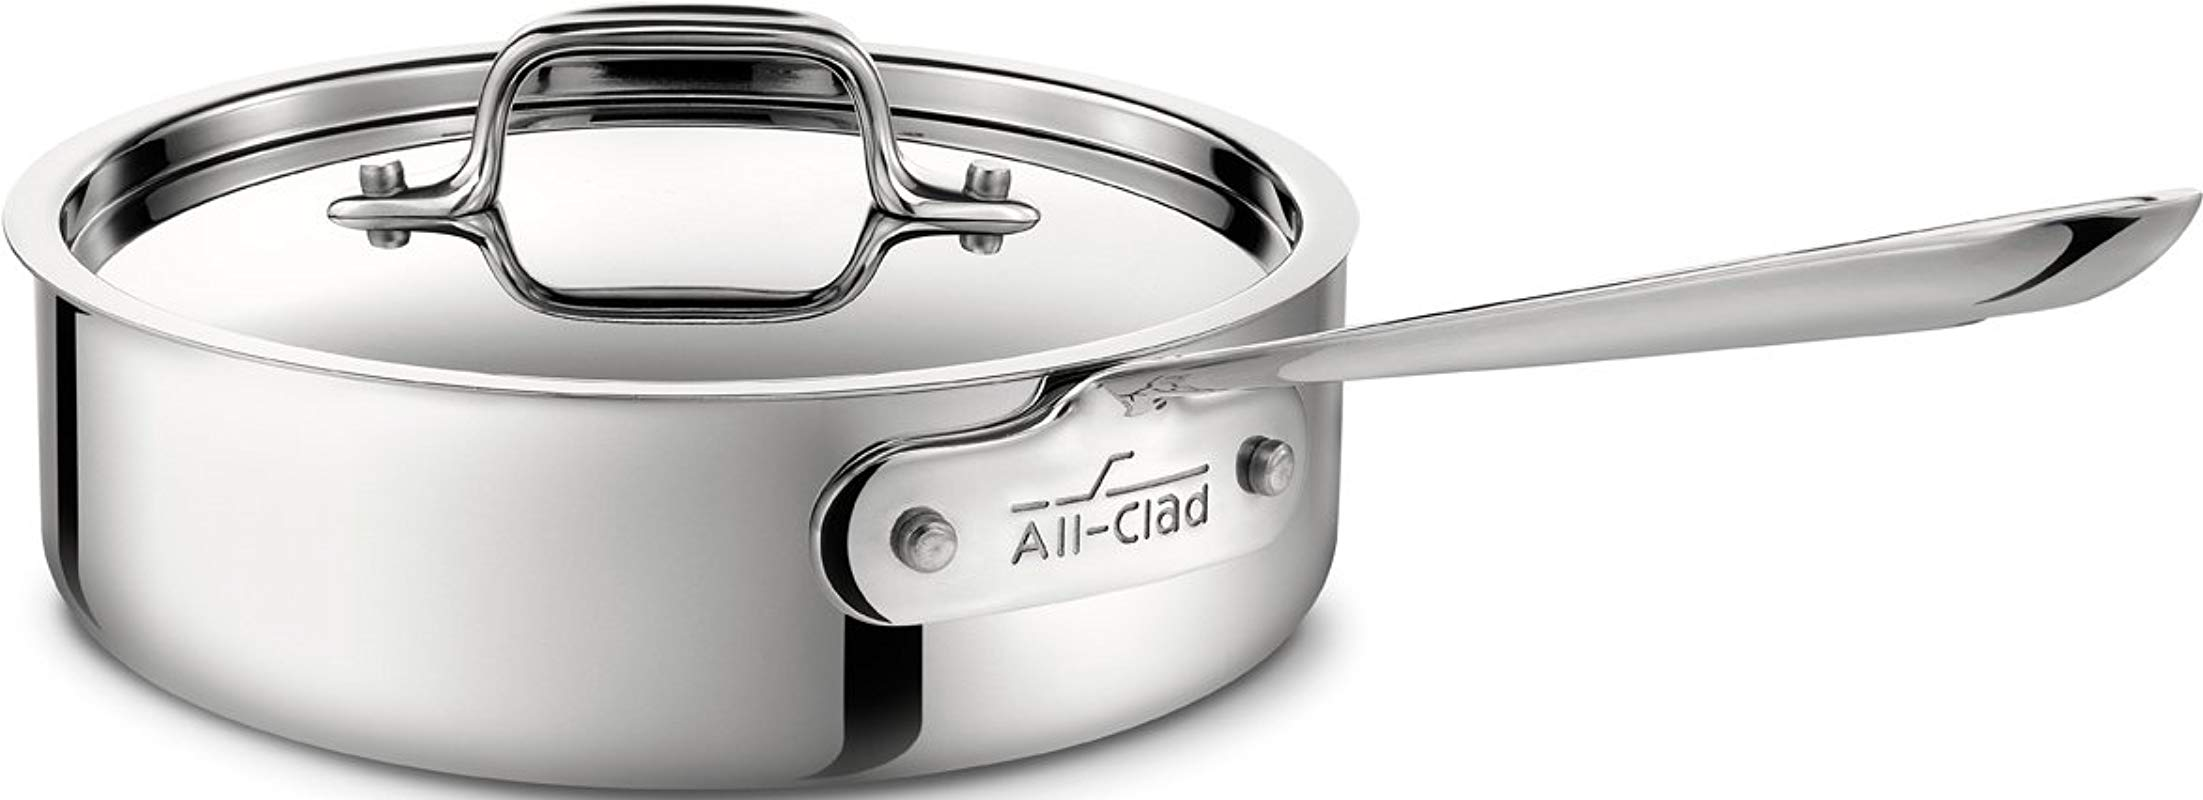 All Clad 4402 Stainless Steel Tri Ply Bonded Dishwasher Safe Saute Pan With Lid Cookware 2 Quart Silver